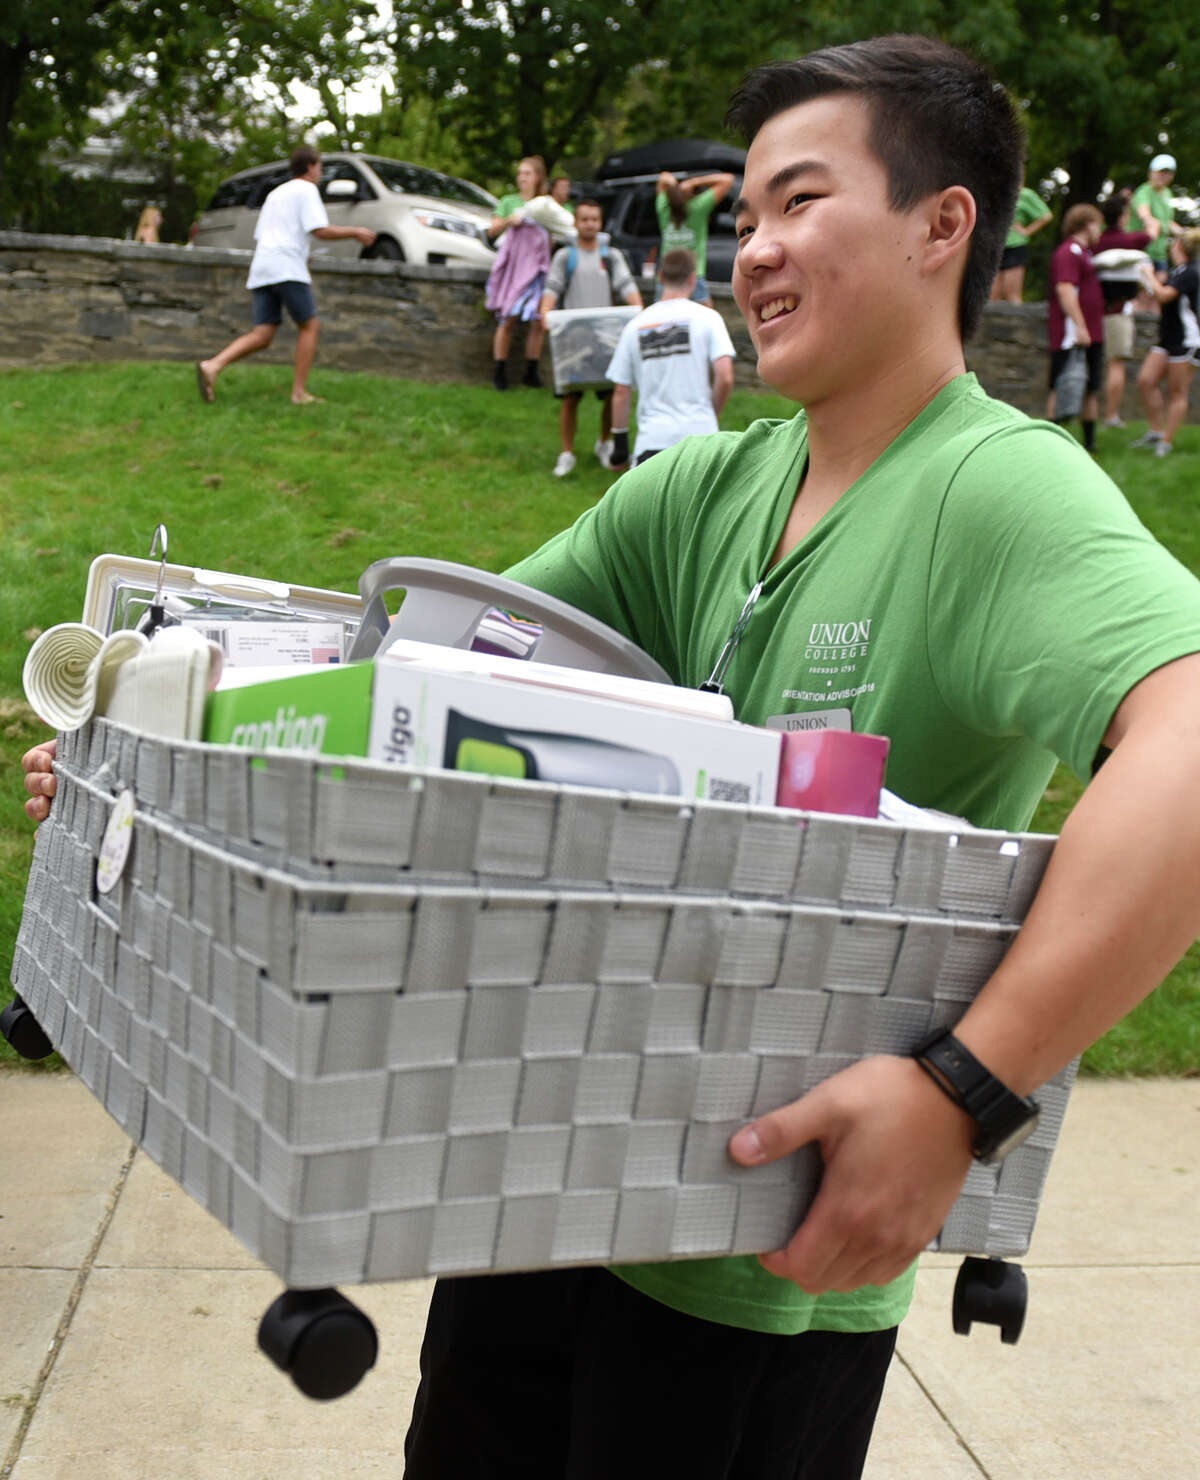 Orientation advisor Brian Lee, 19, helps freshmen move in on Wednesday, Aug. 31, 2016, at Union College in Schenectady, N.Y. (Cindy Schultz / Times Union)